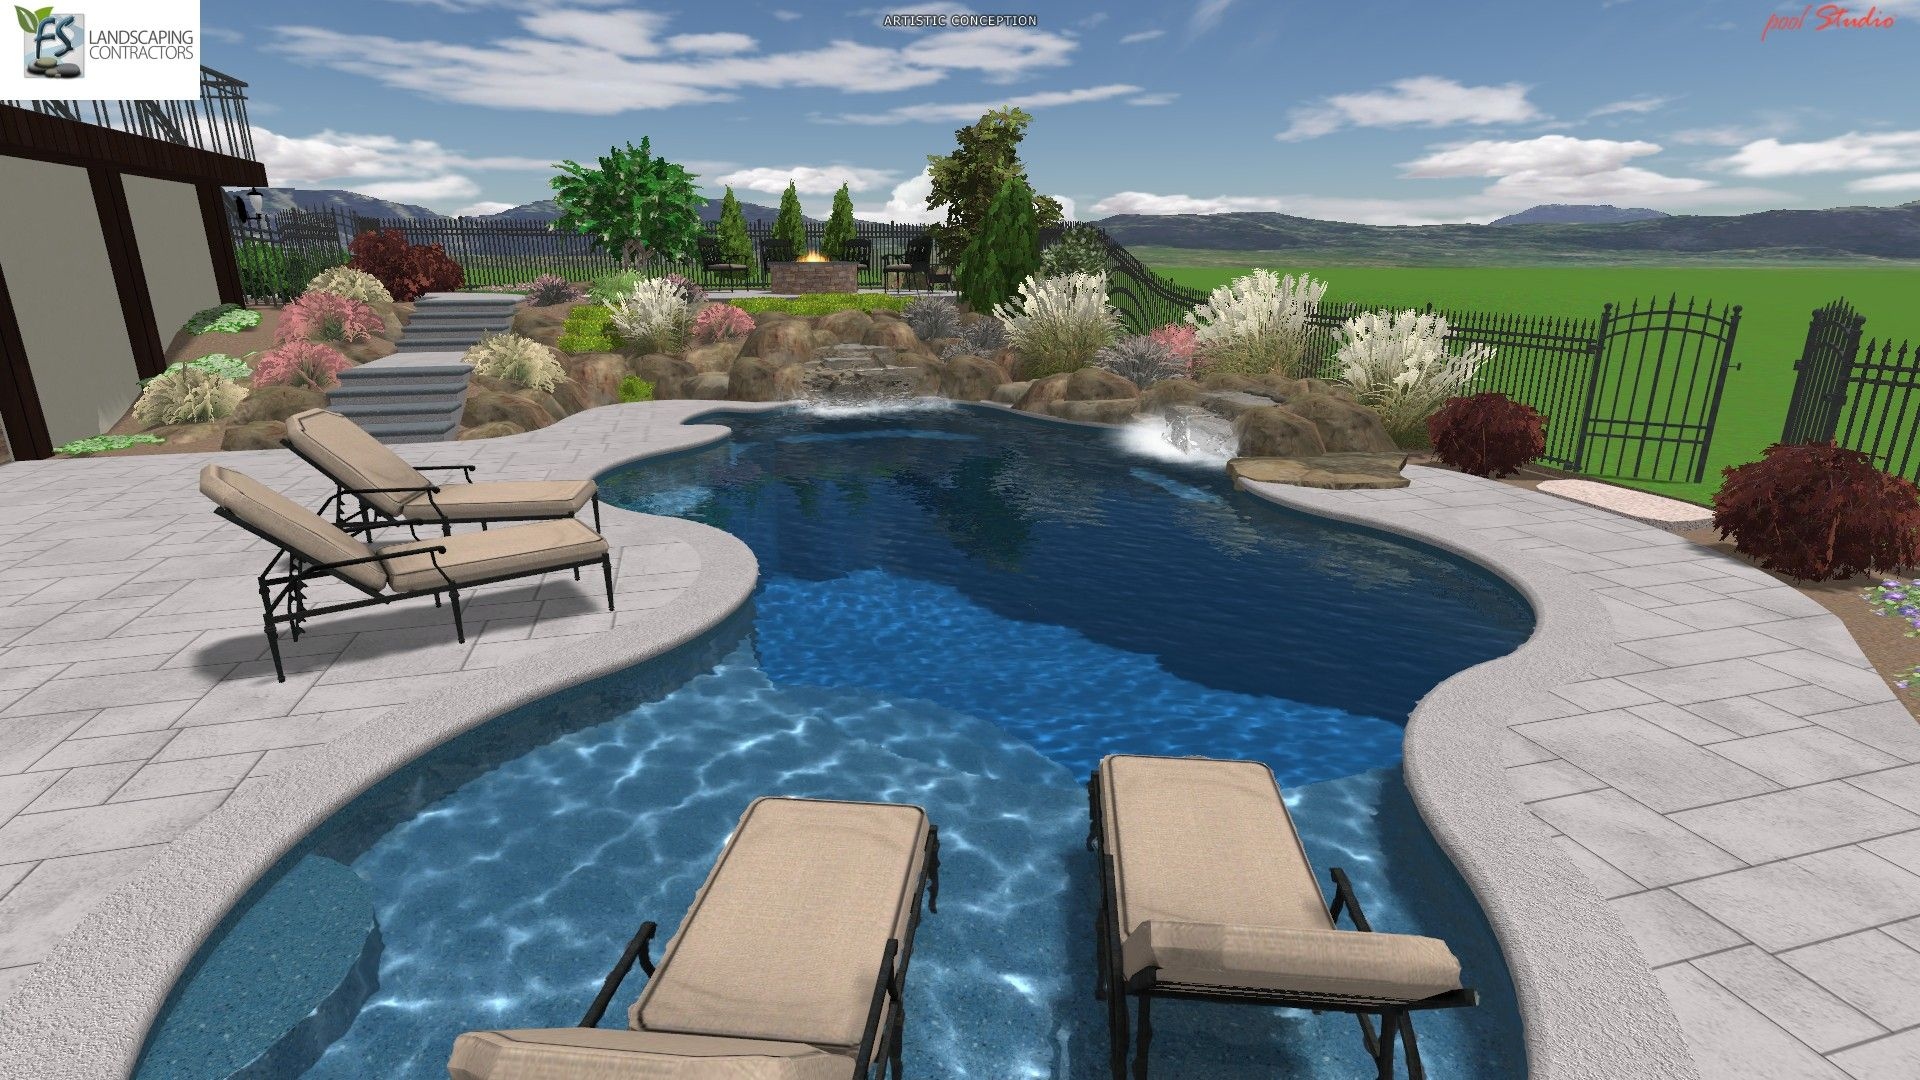 from custom shaped gunite pools to fiberglass pools they are the one stop shop for - Gunite Pool Design Ideas